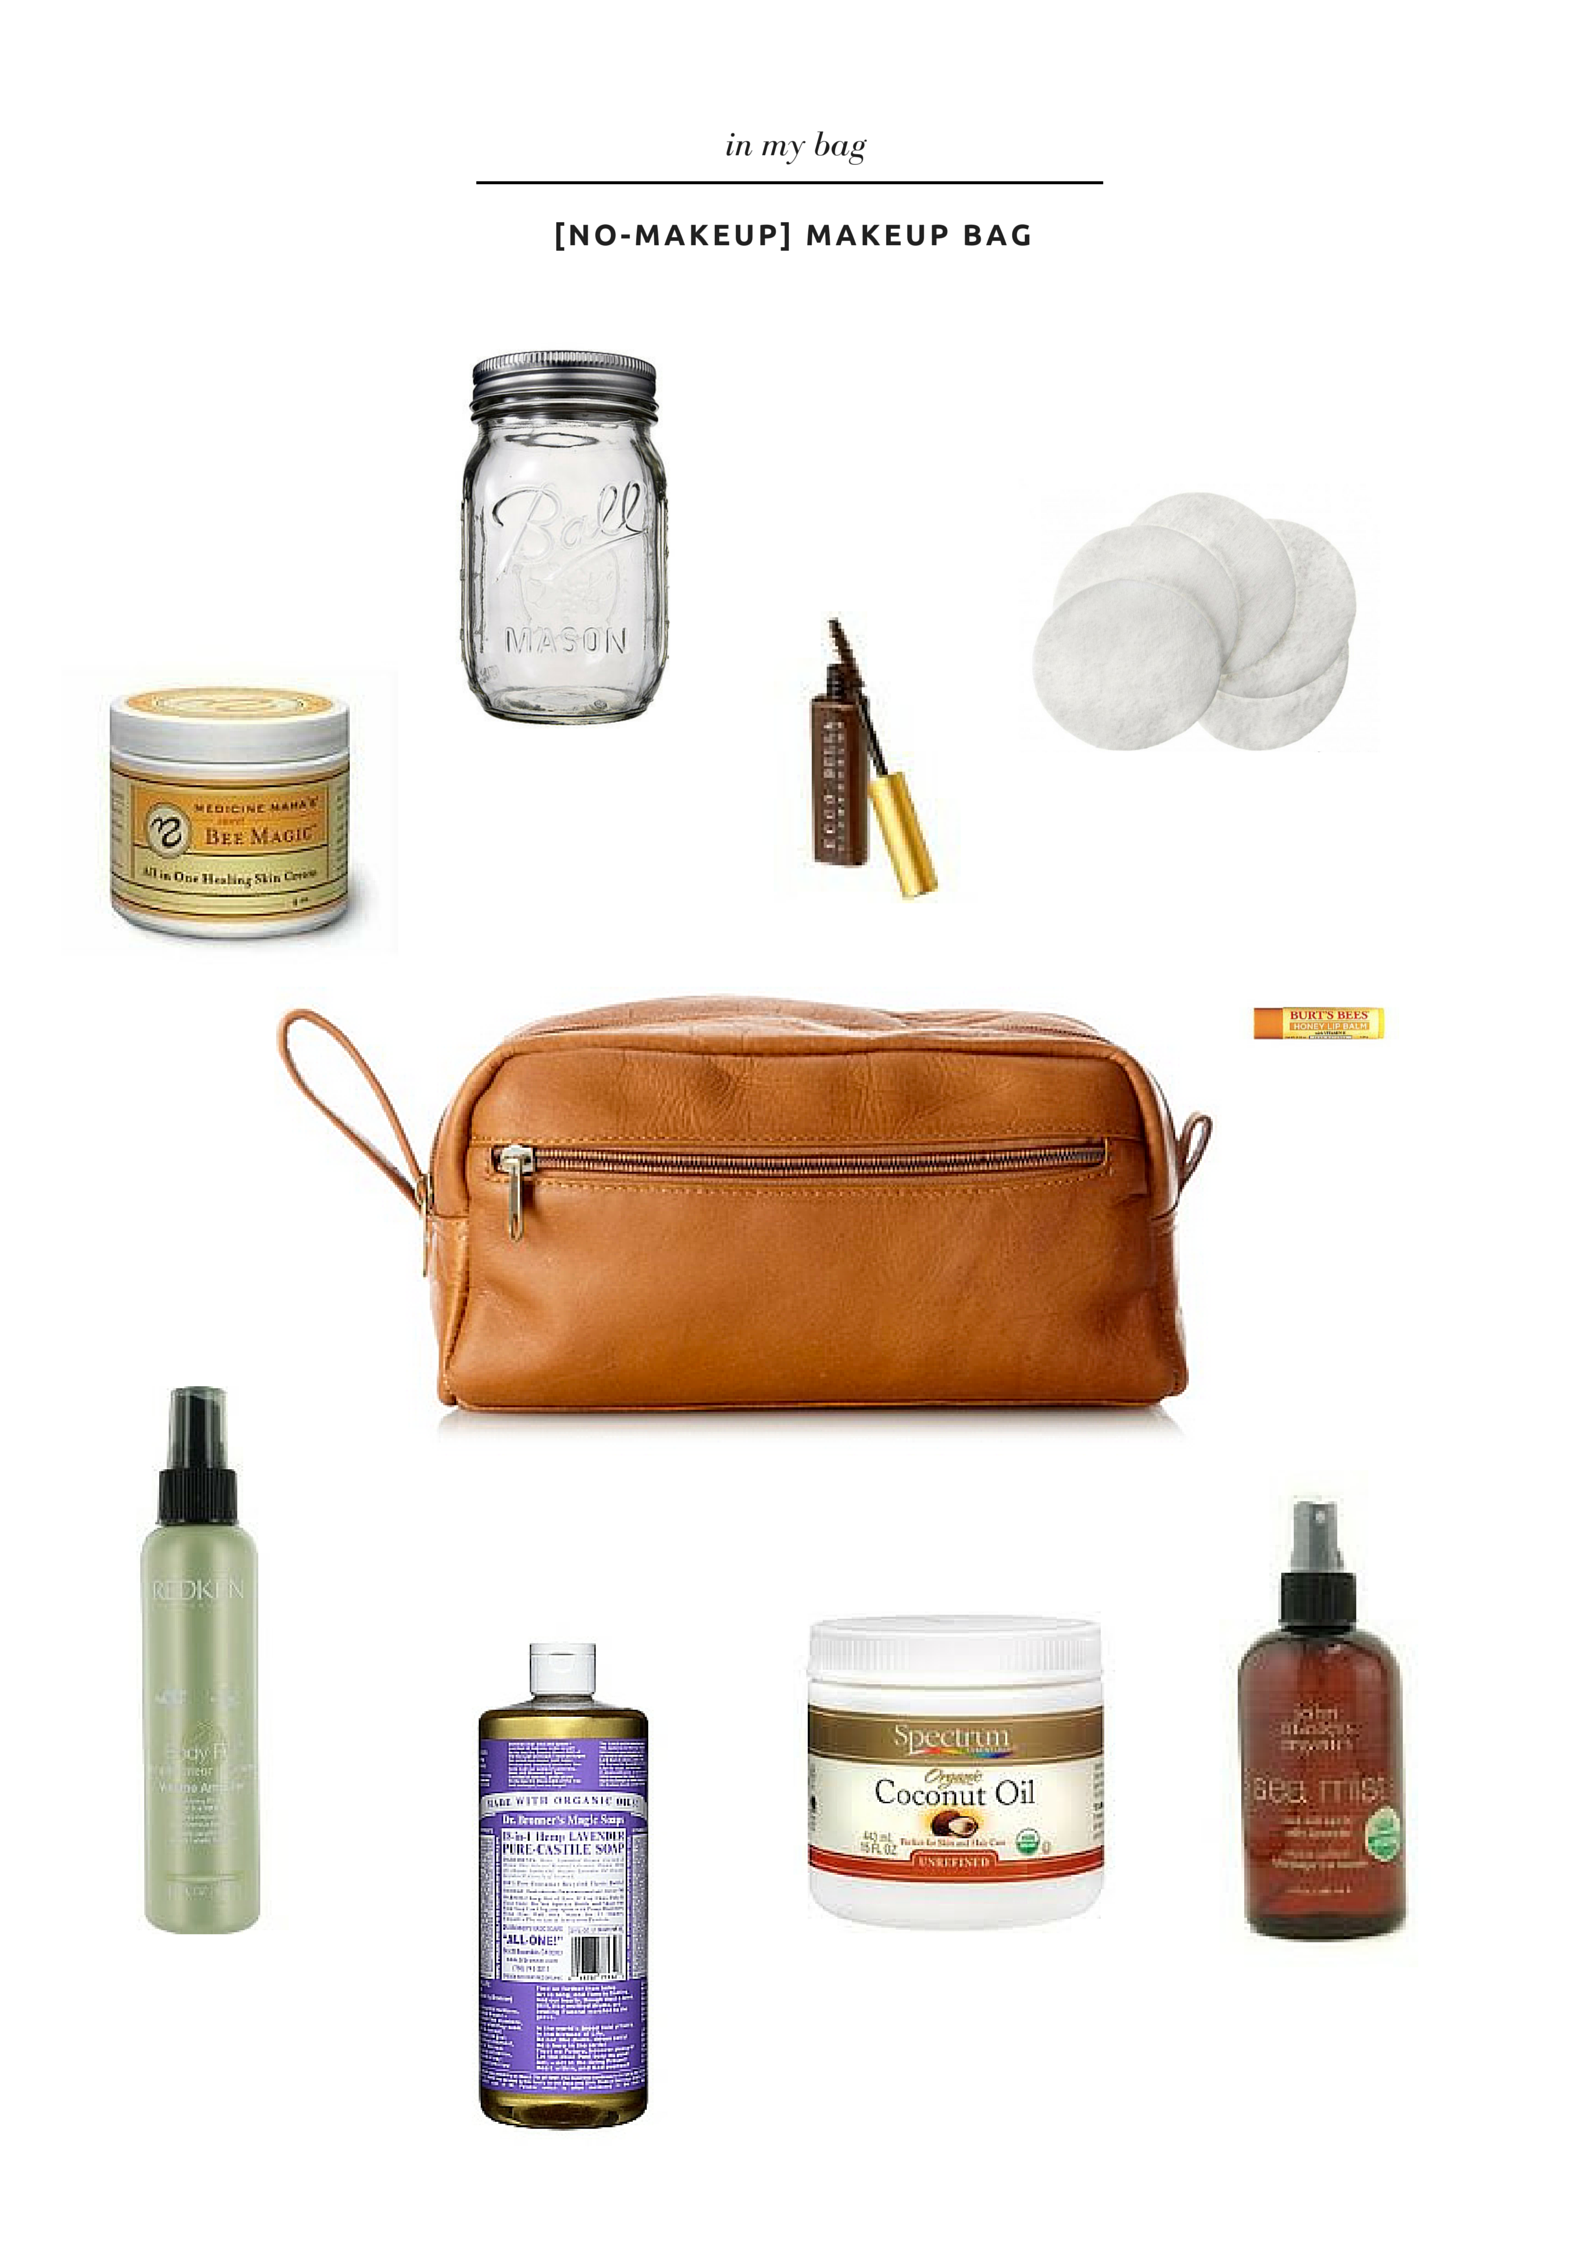 in my bag, [no-makeup] makeup bag - thelovelylauralife.com